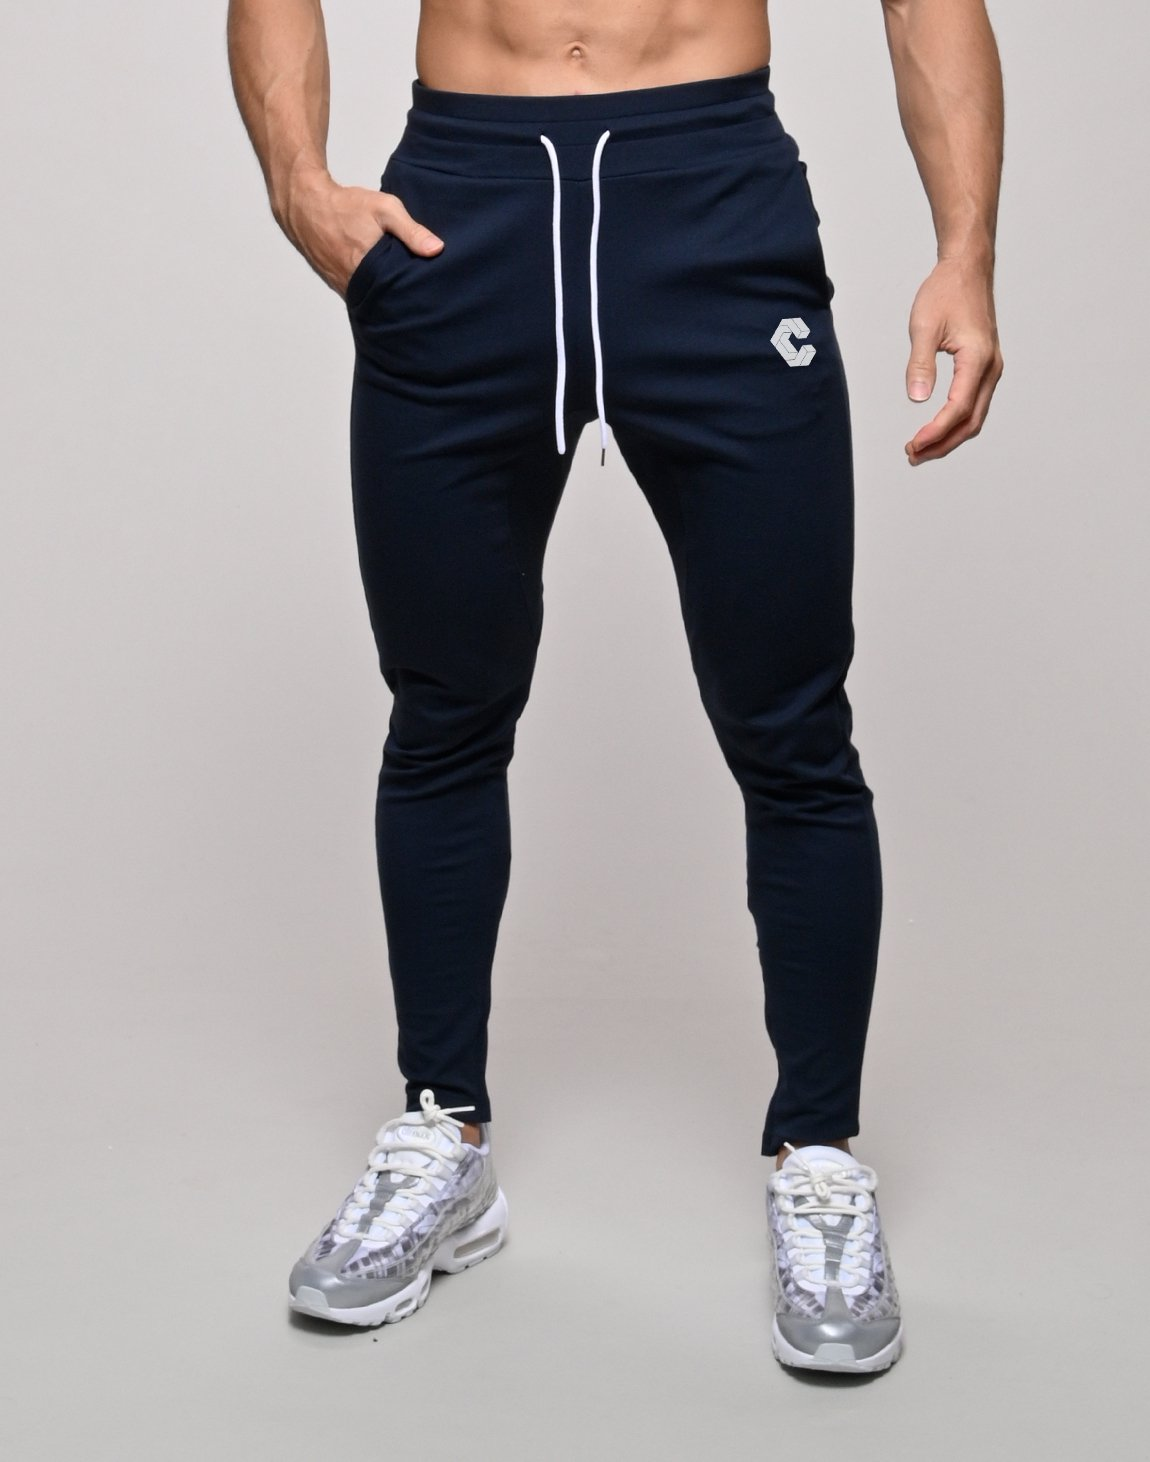 CRONOS NEW MODE PANTS【NAVY】